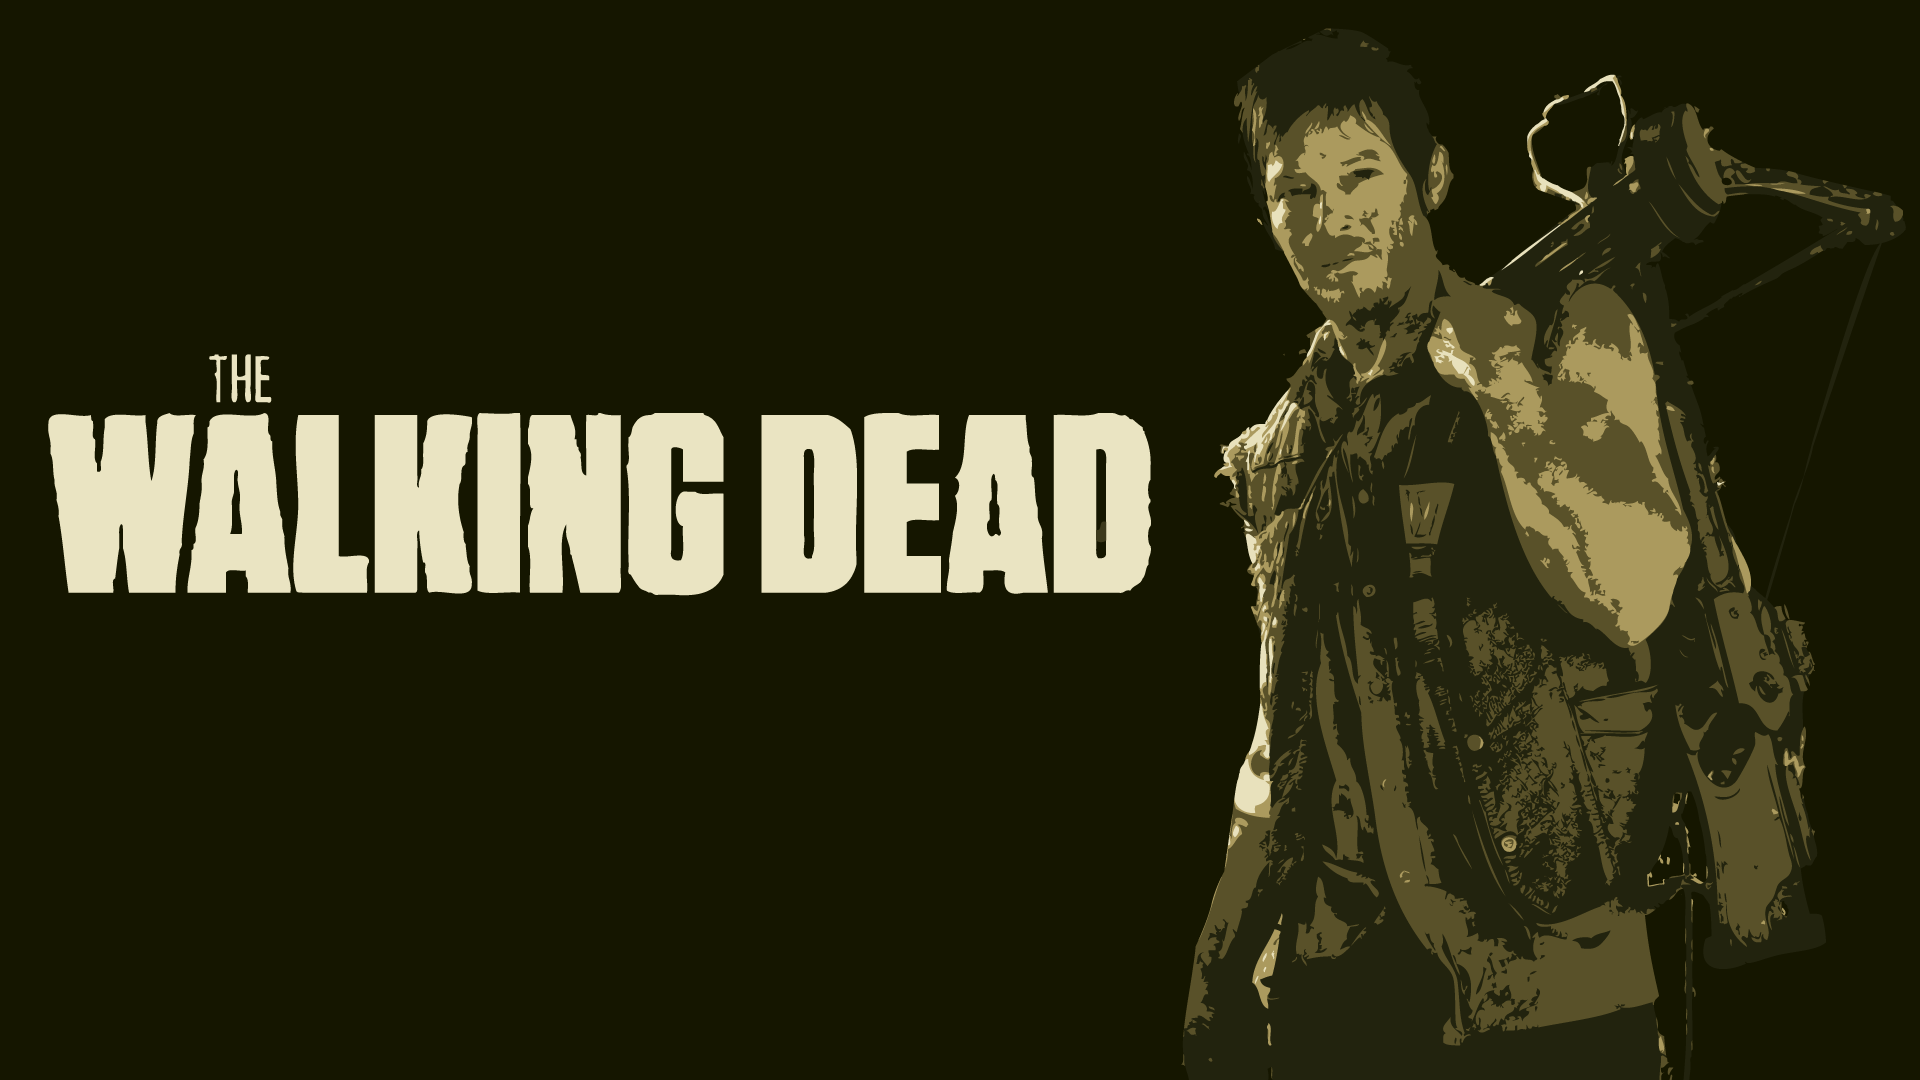 Free-download-walking-dead-pic-by-Queen-Butler-wallpaper-wp3605856